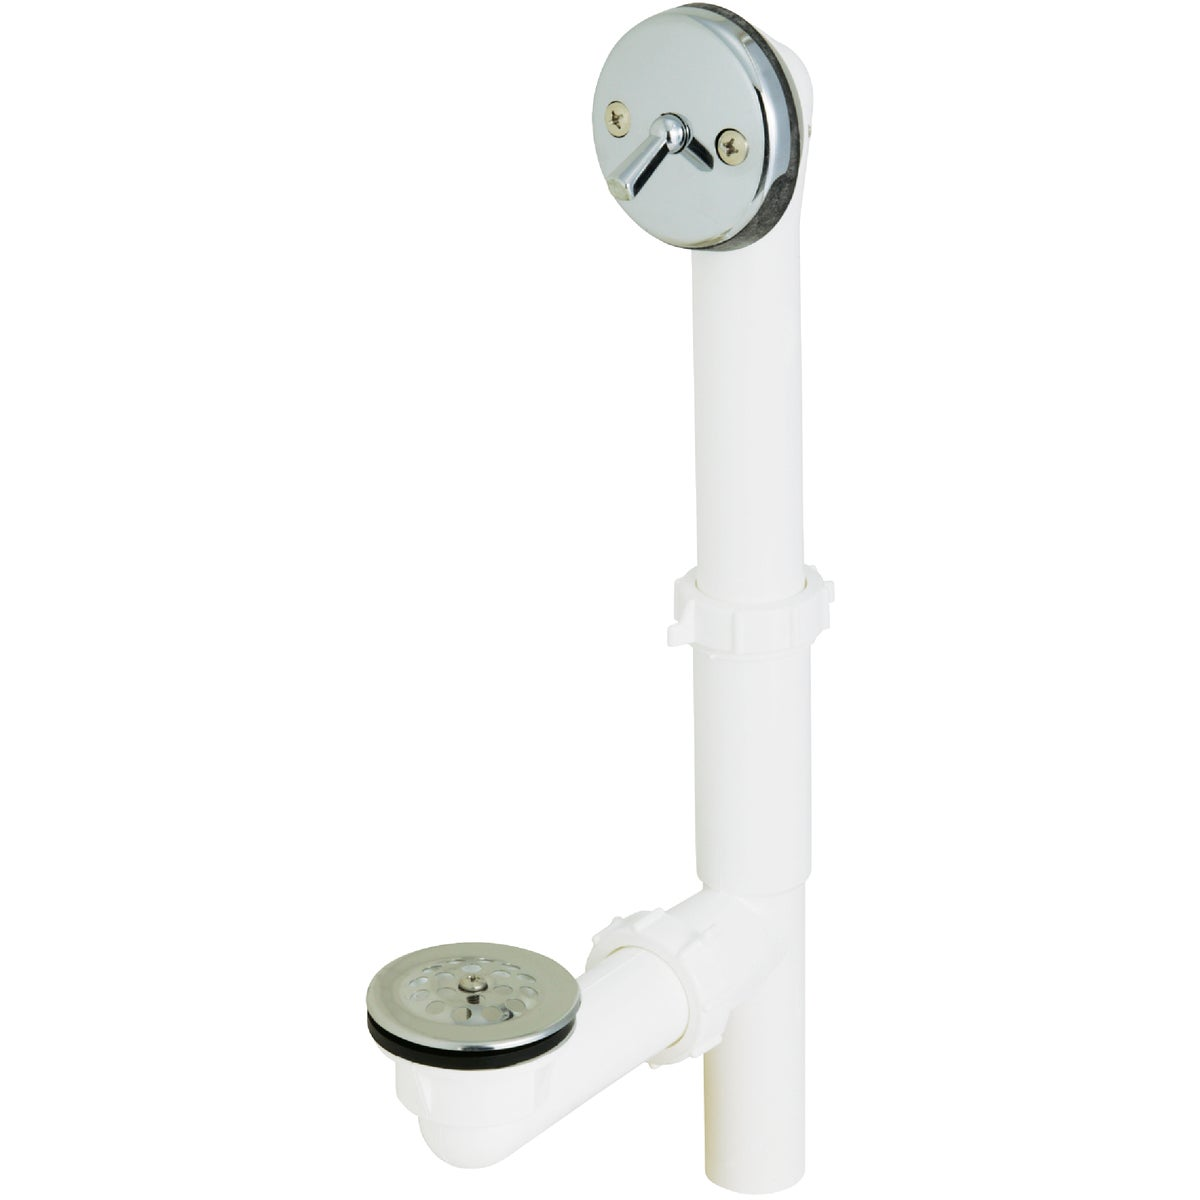 CHR TRIPLEVER BATH DRAIN - 64W by Plumb Pak/keeney Mfg